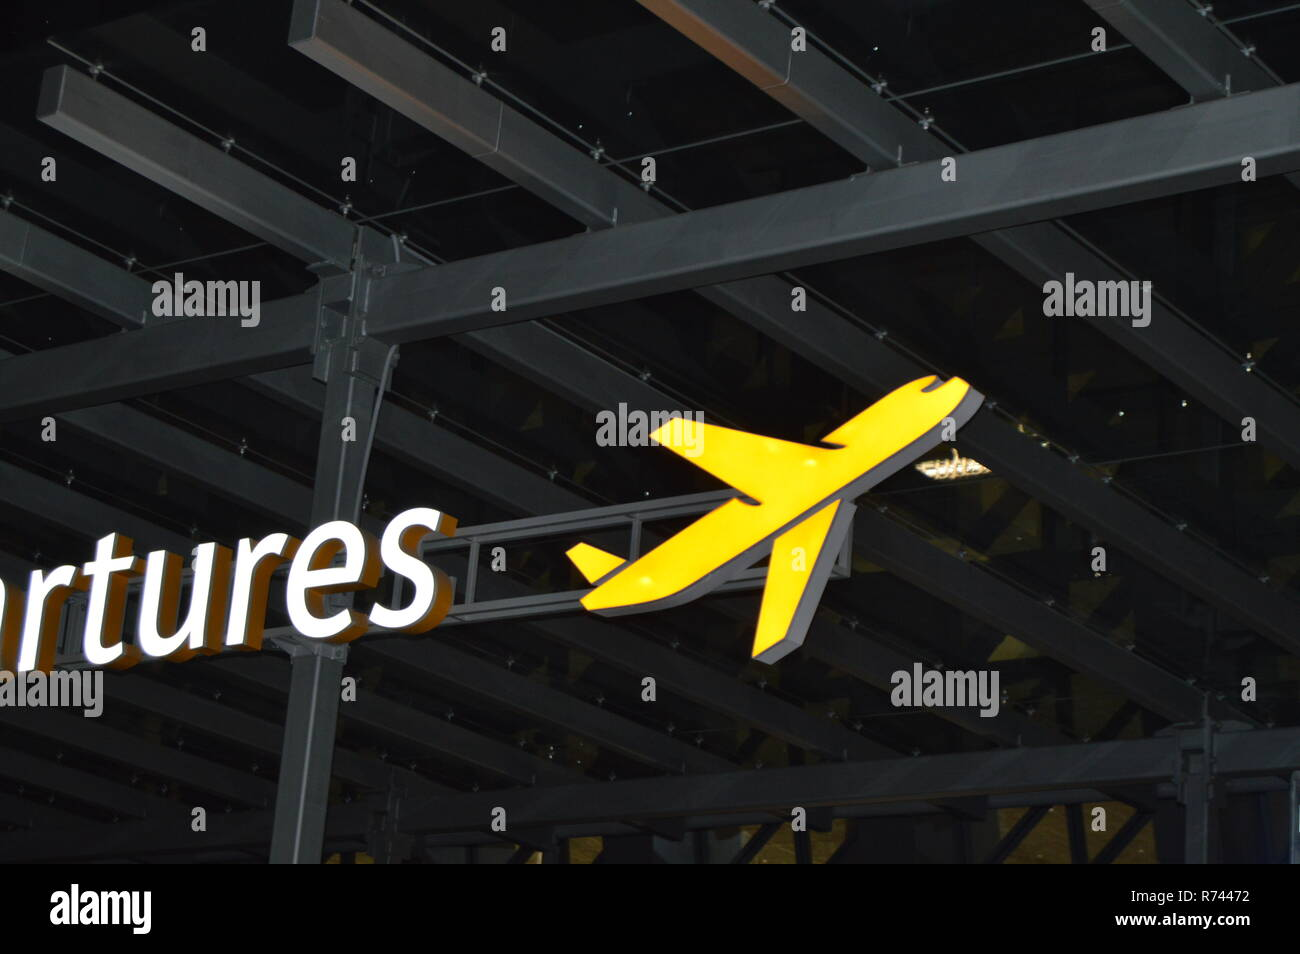 Information About The Departure Zone Signpost Of The Aircraft At The Airport At Night The Concept Of Travel Stock Photo Alamy